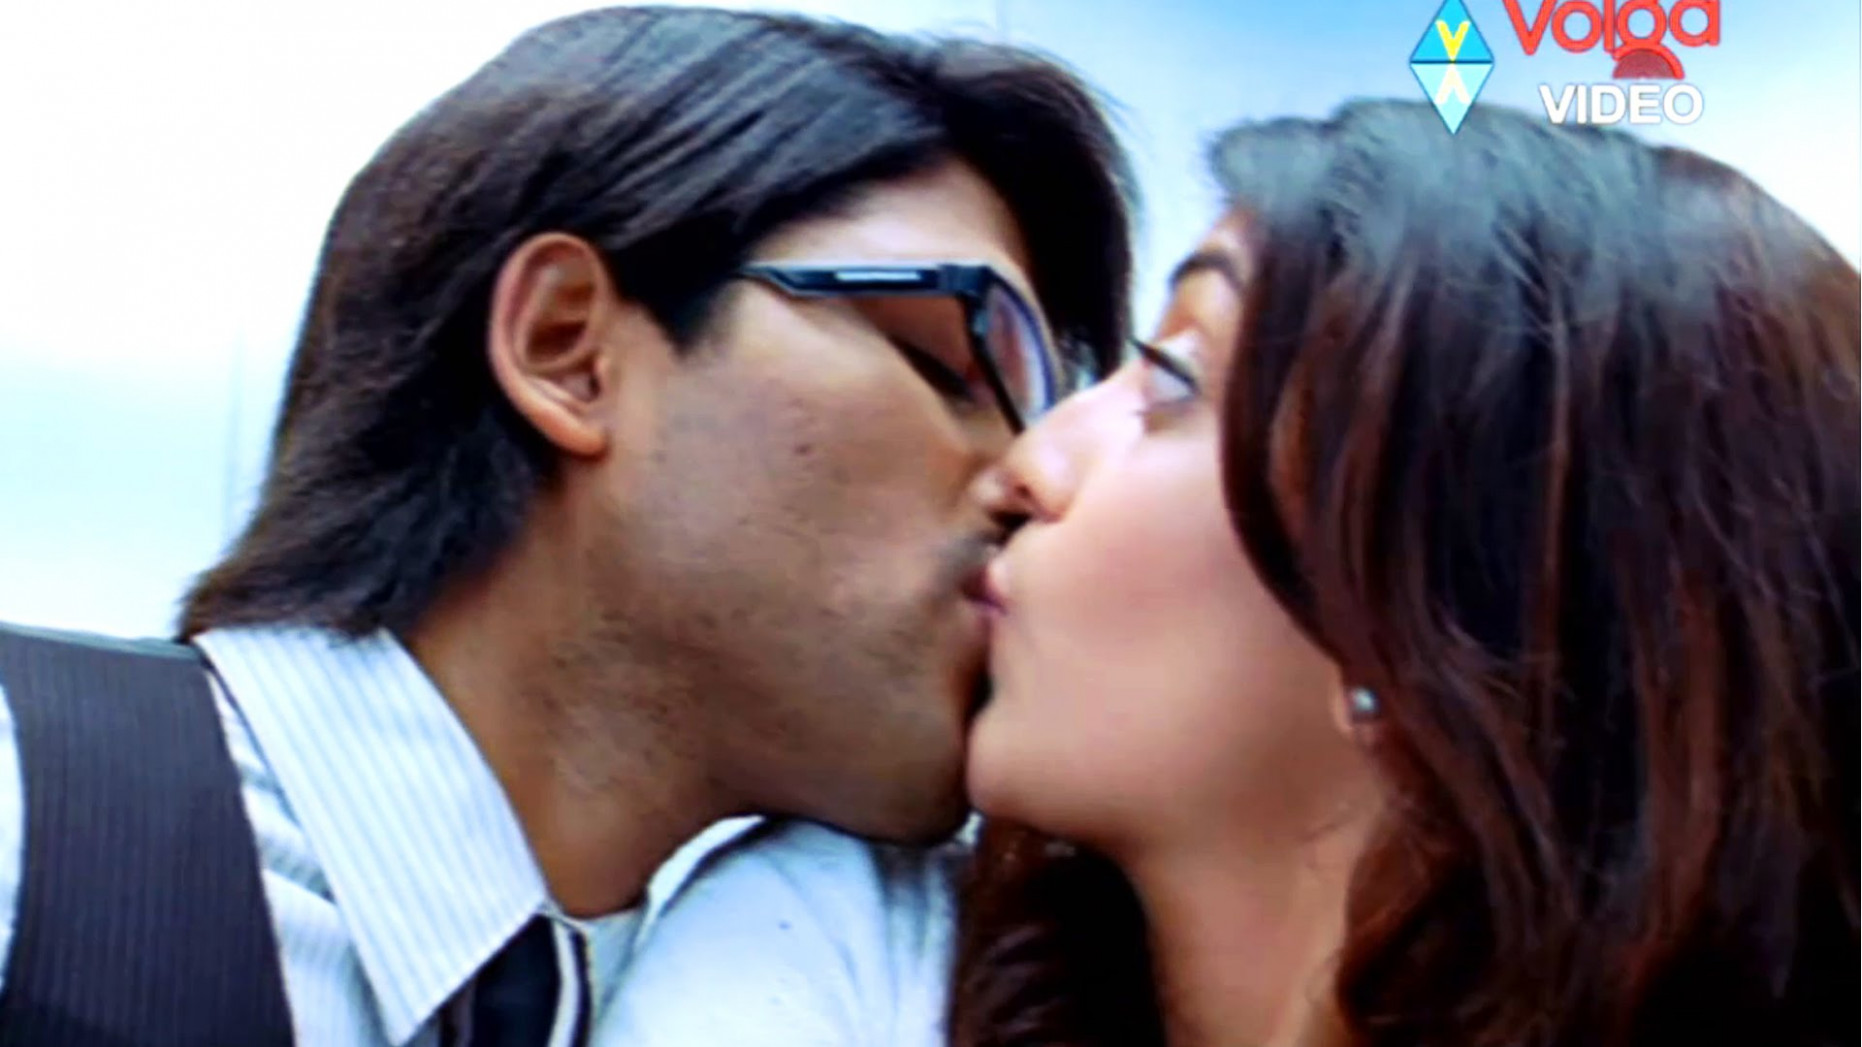 Anushka Shetty kiss | Anushka Shetty Hot Images